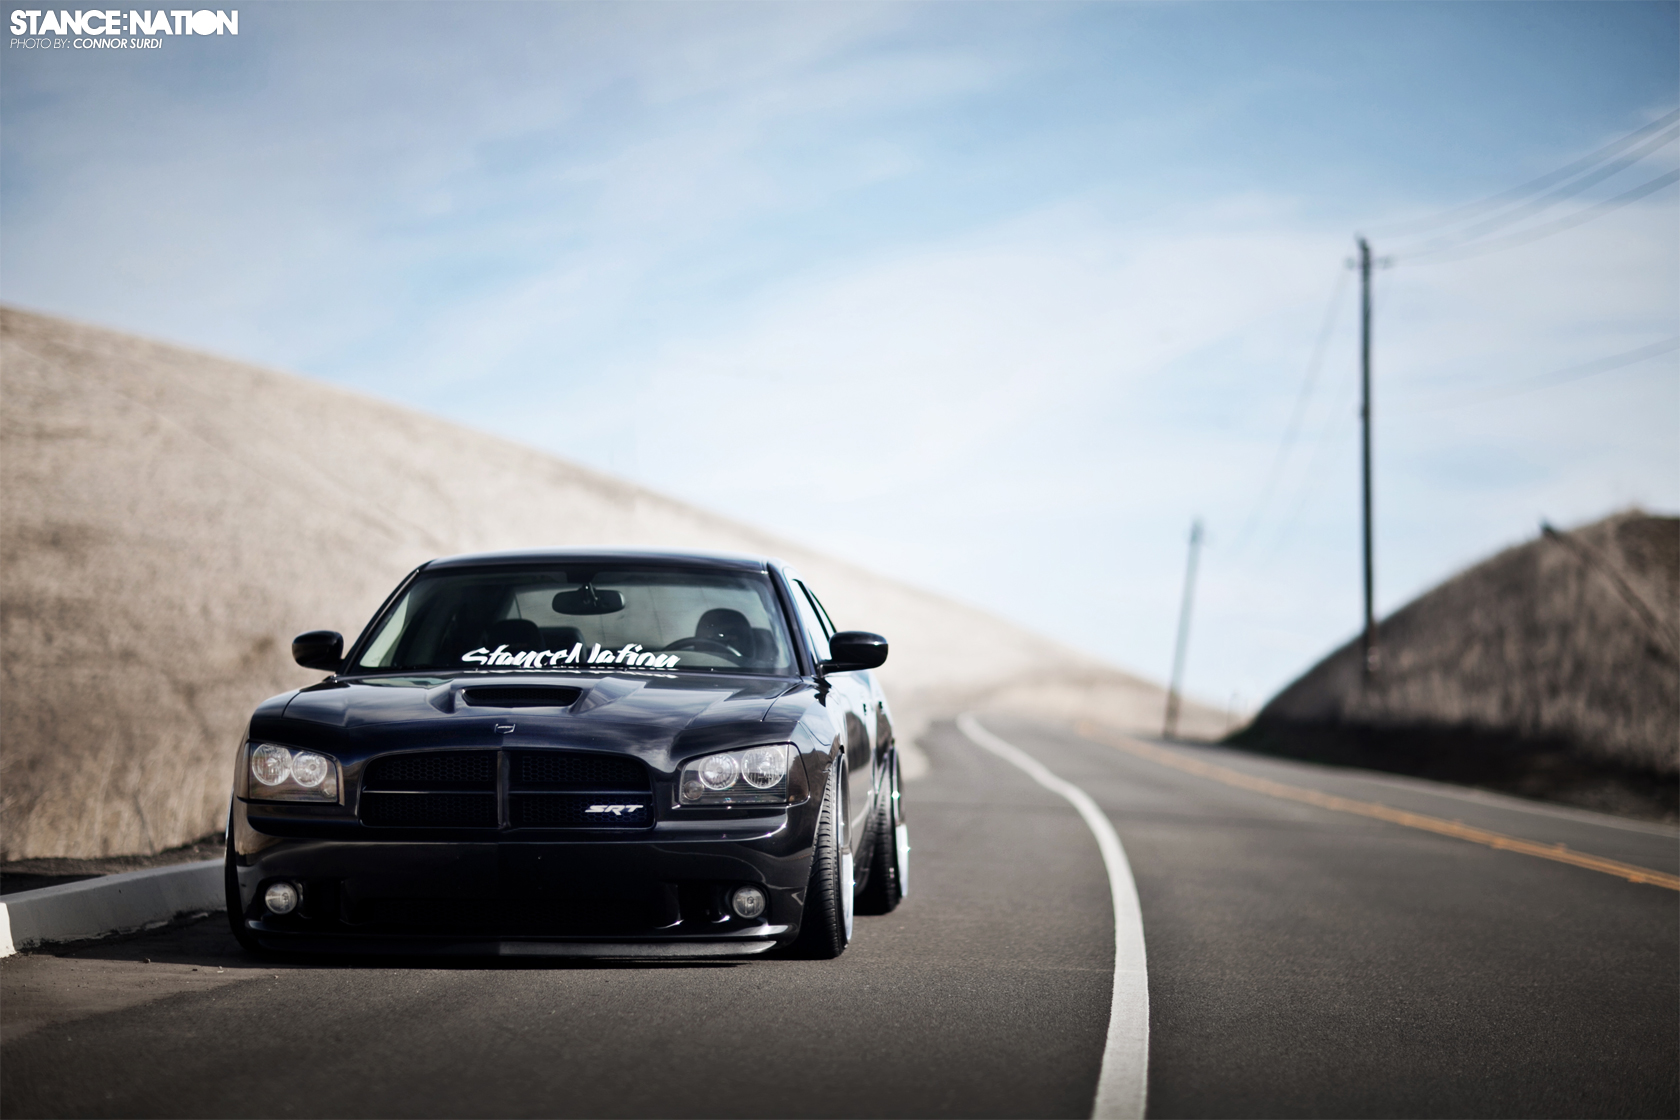 Stance Nation Charger Srt8 Amcarguide Com American